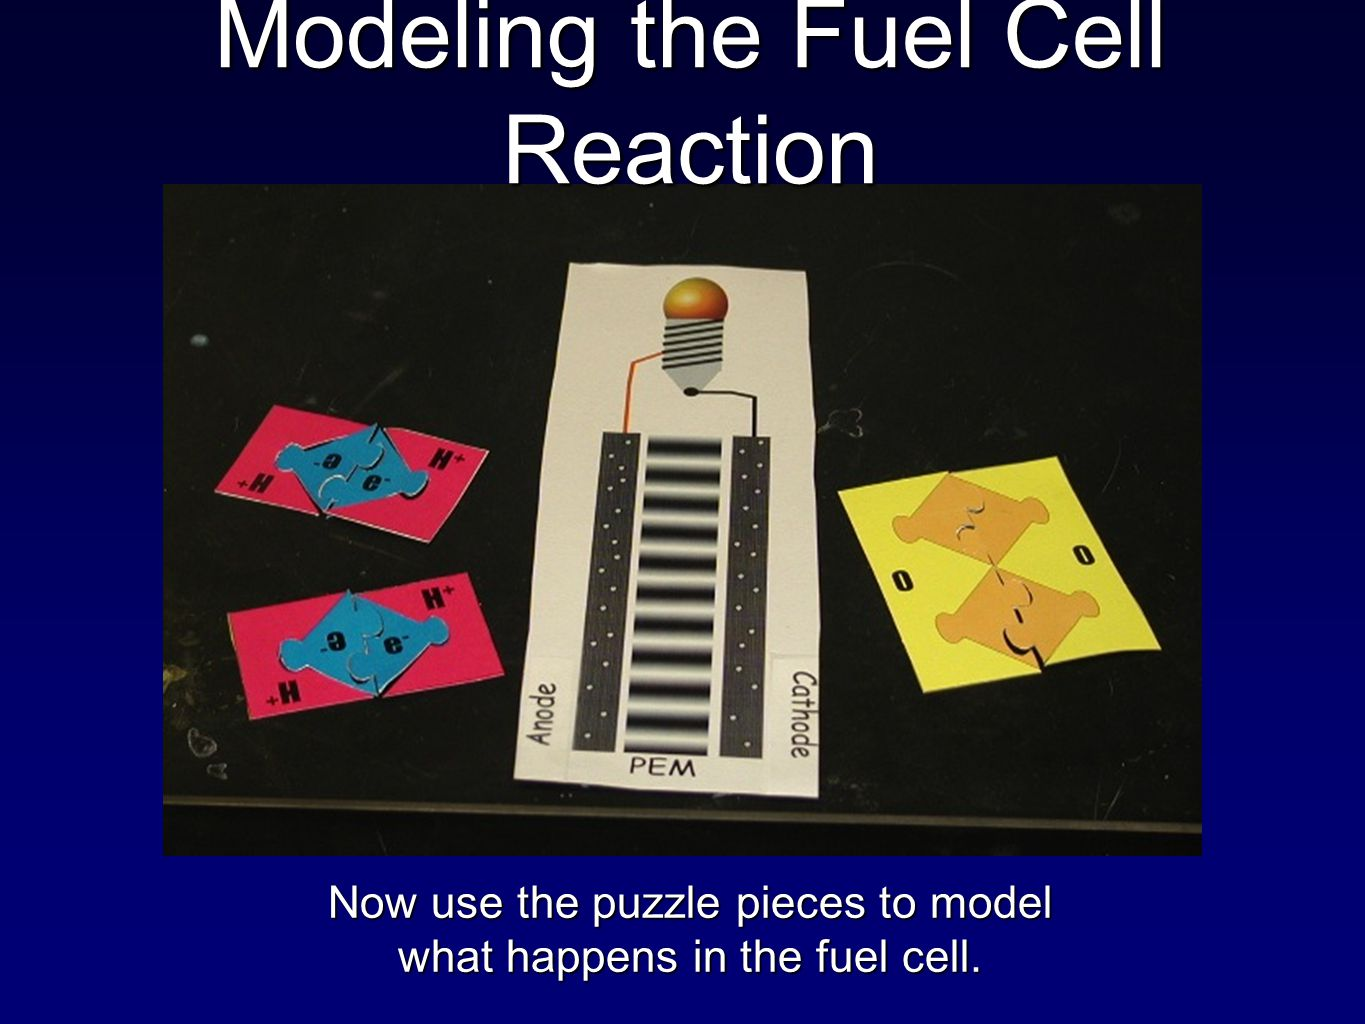 Now use the puzzle pieces to model what happens in the fuel cell. Modeling the Fuel Cell Reaction